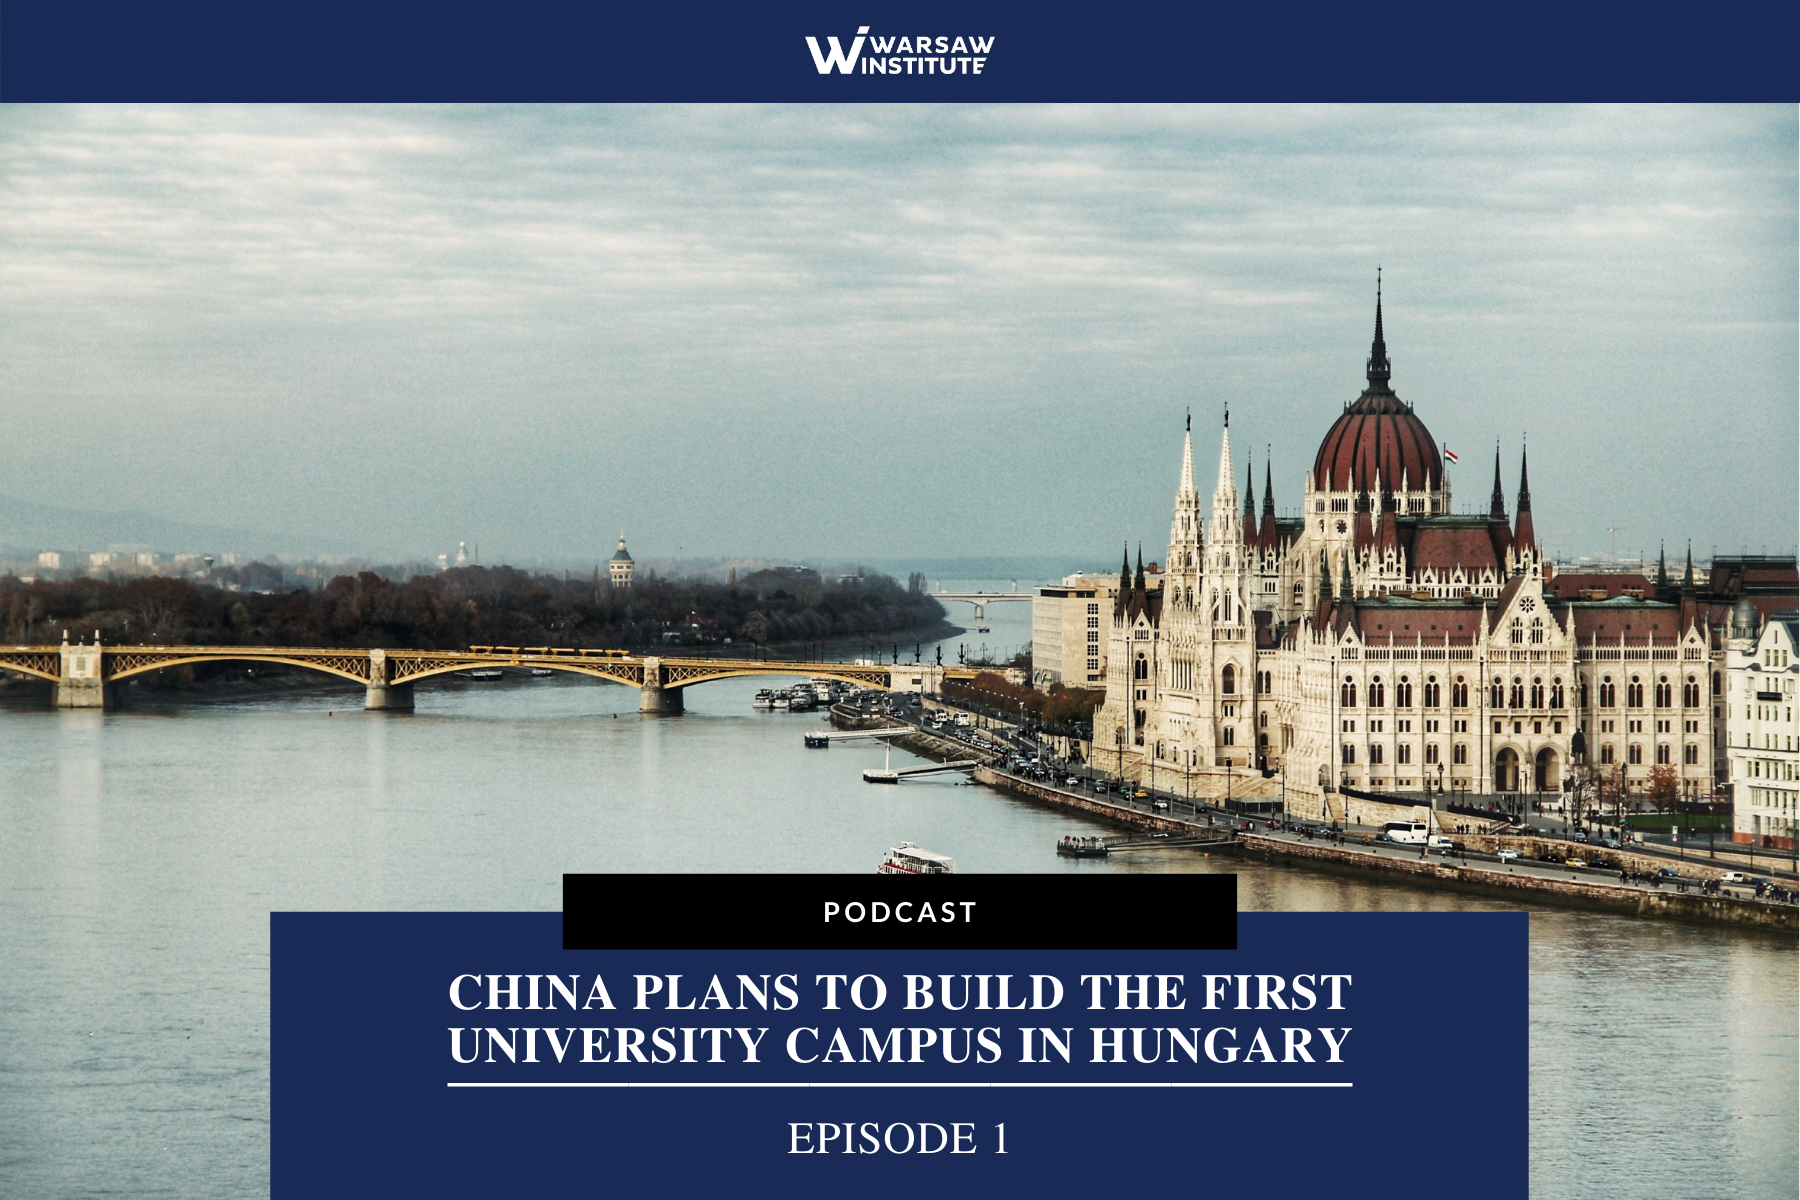 China Plans to Build the First University Campus in Hungary – Podcast